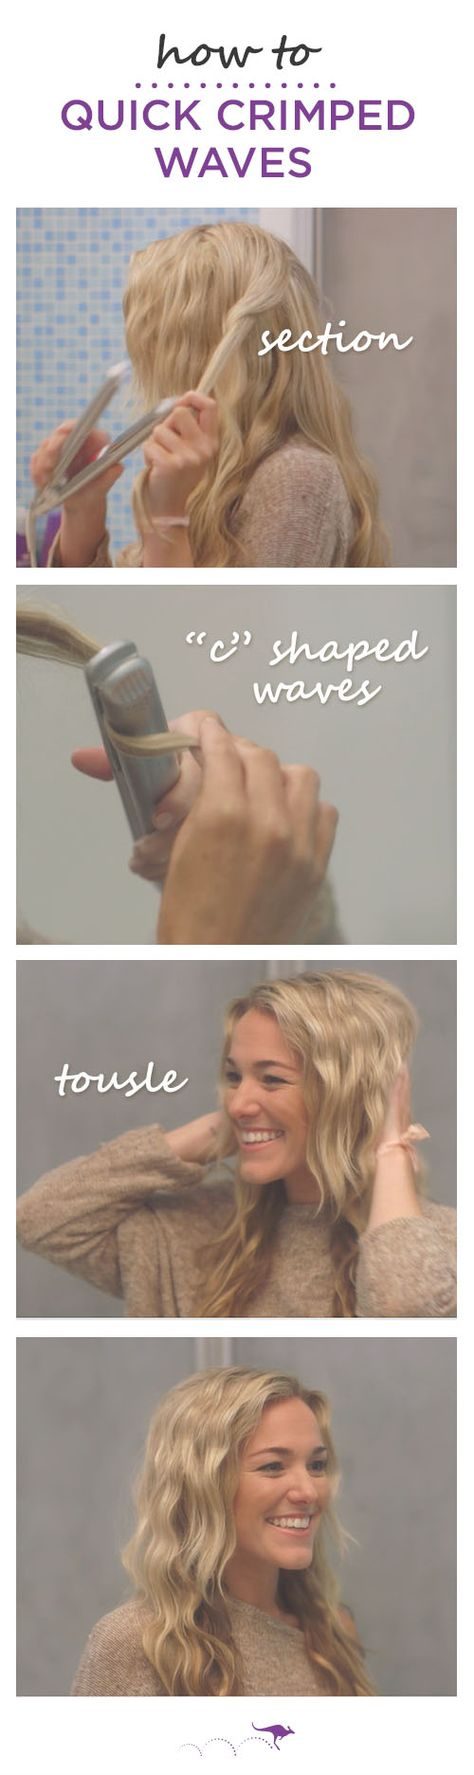 """How To: Quick Crimped Waves     Get those next-day-braid waves without the wait     1. Section hair starting from the bottom layer & clip back sections  •  2. Using a flat iron create alternating """"C"""" shaped waves, sliding the iron slowly down from root to tip  •  3. Once strands are crimped, tousle for added volume. And for fuller hair, use Aussie Aussome Volume Shampoo & Conditioner."""